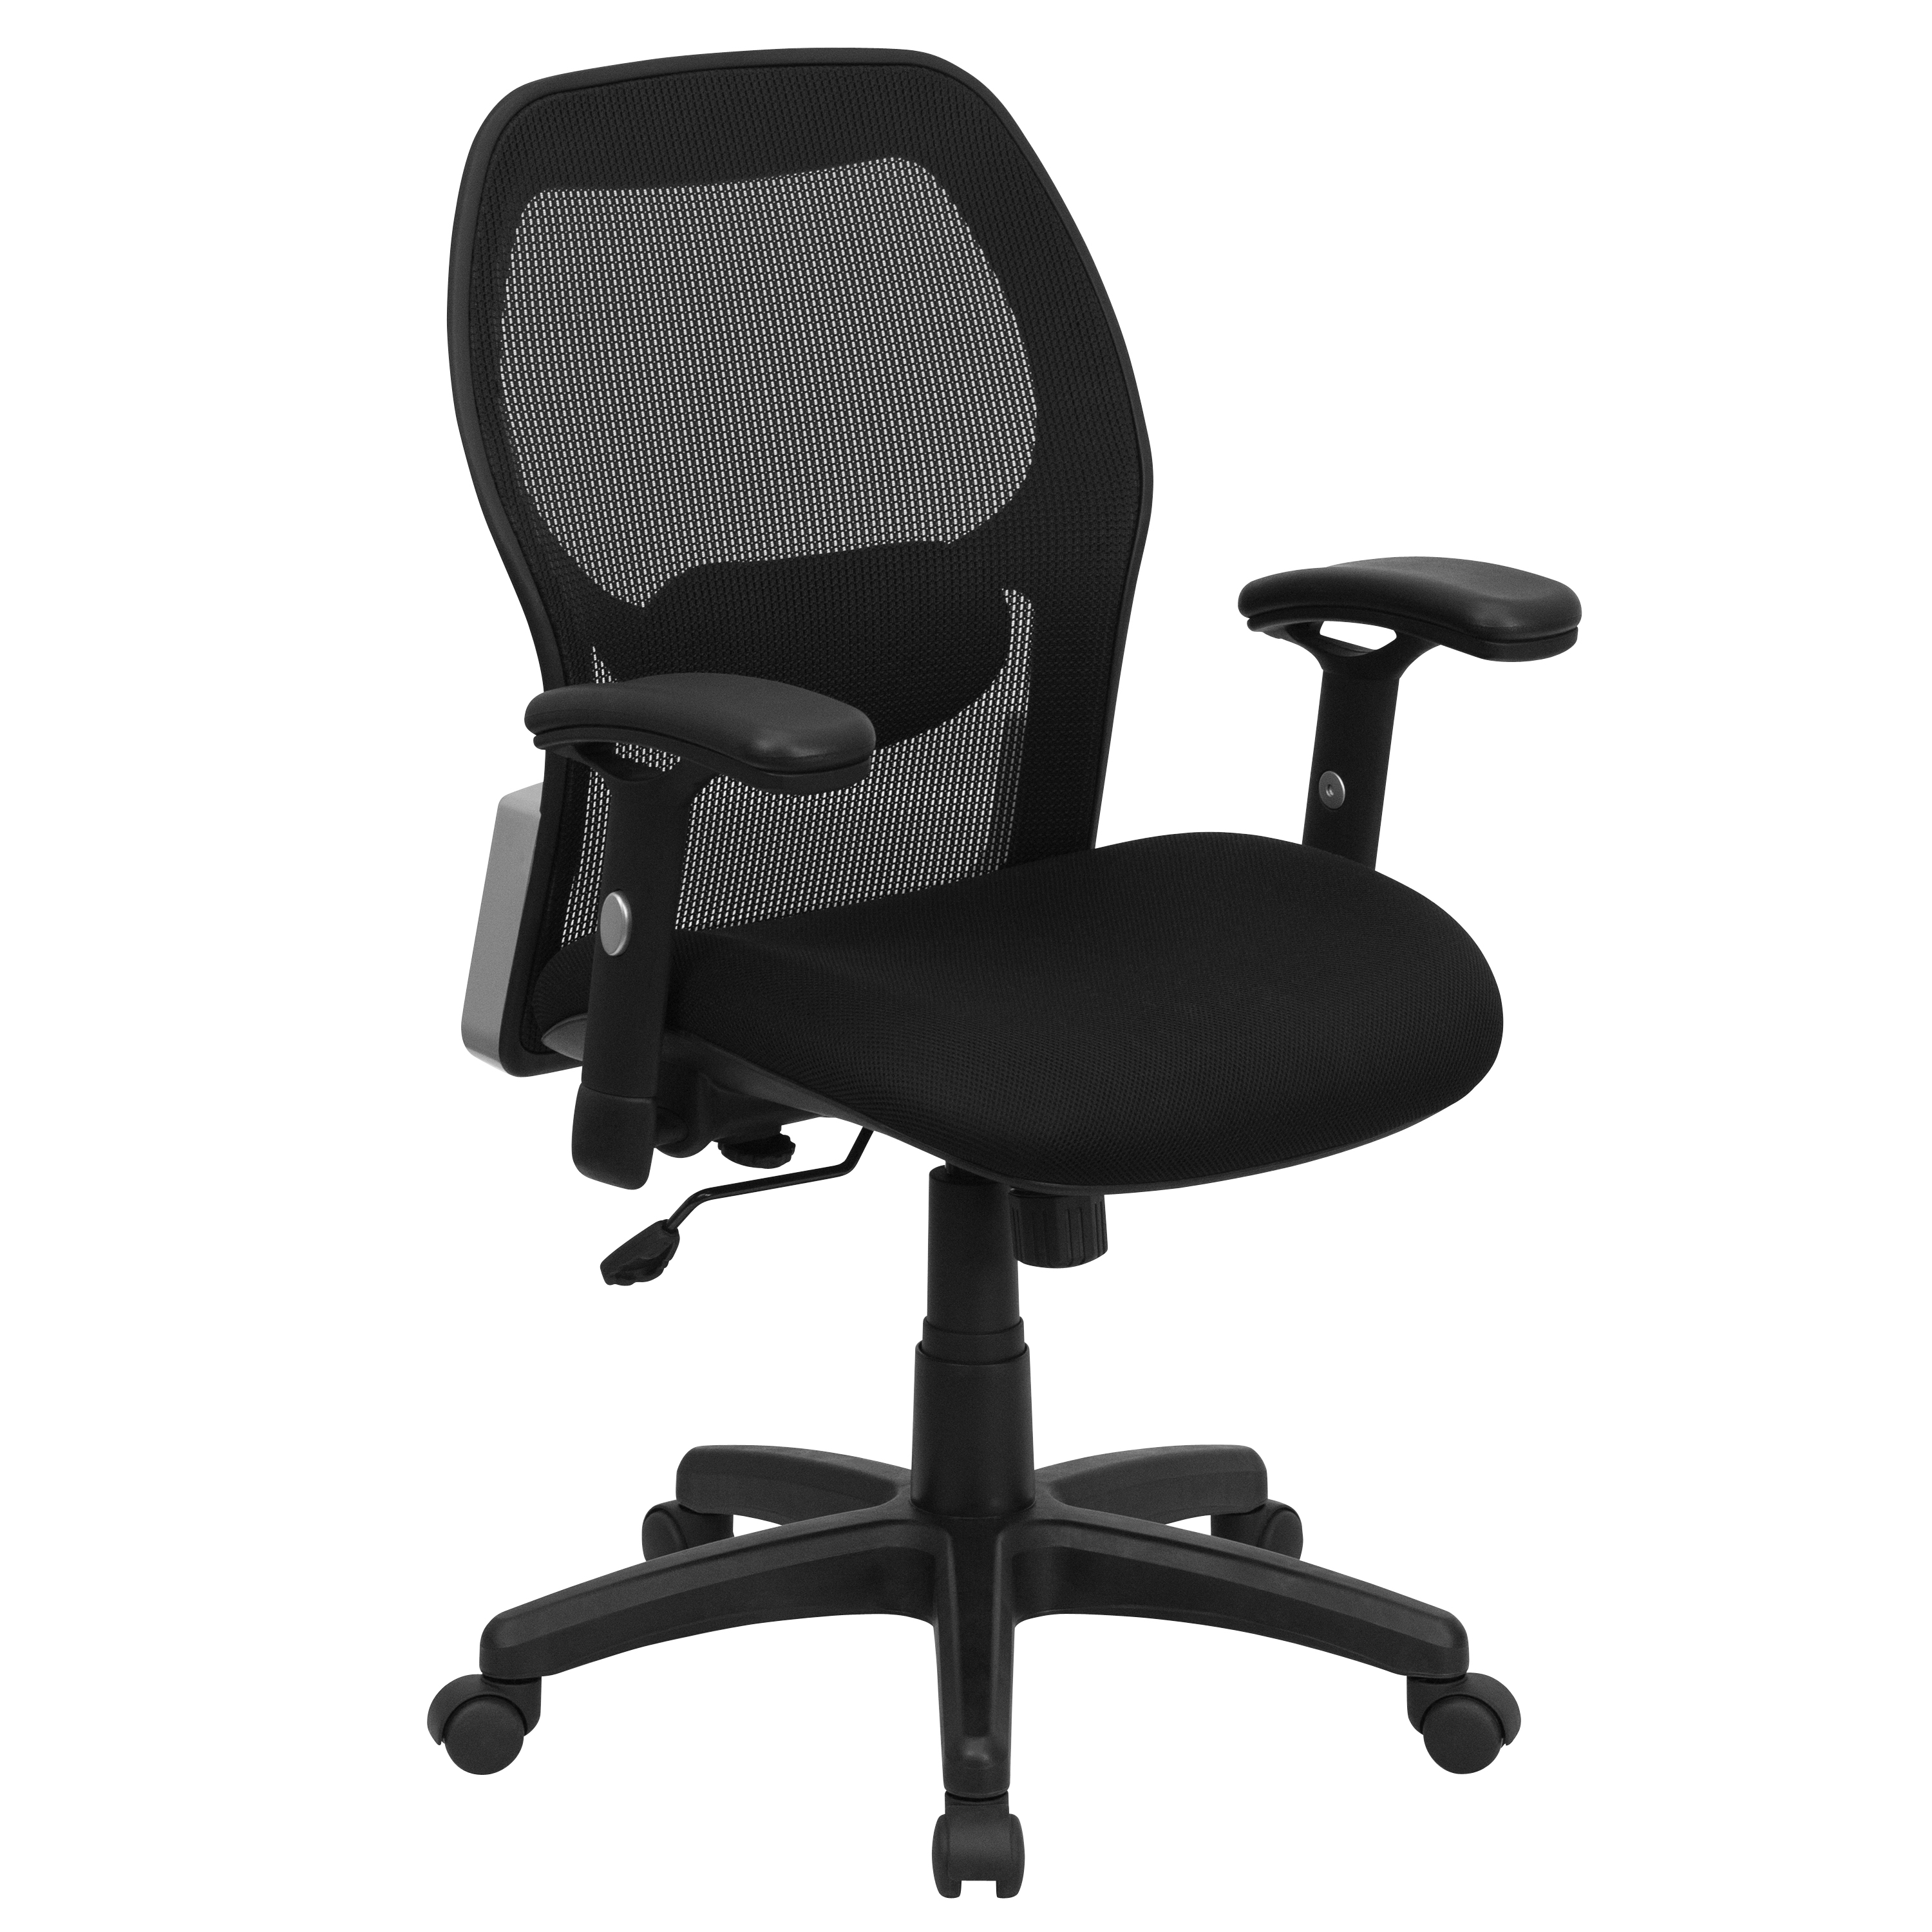 black mesh office chair victoria bentwood rocking flash super with fabric seat by oj